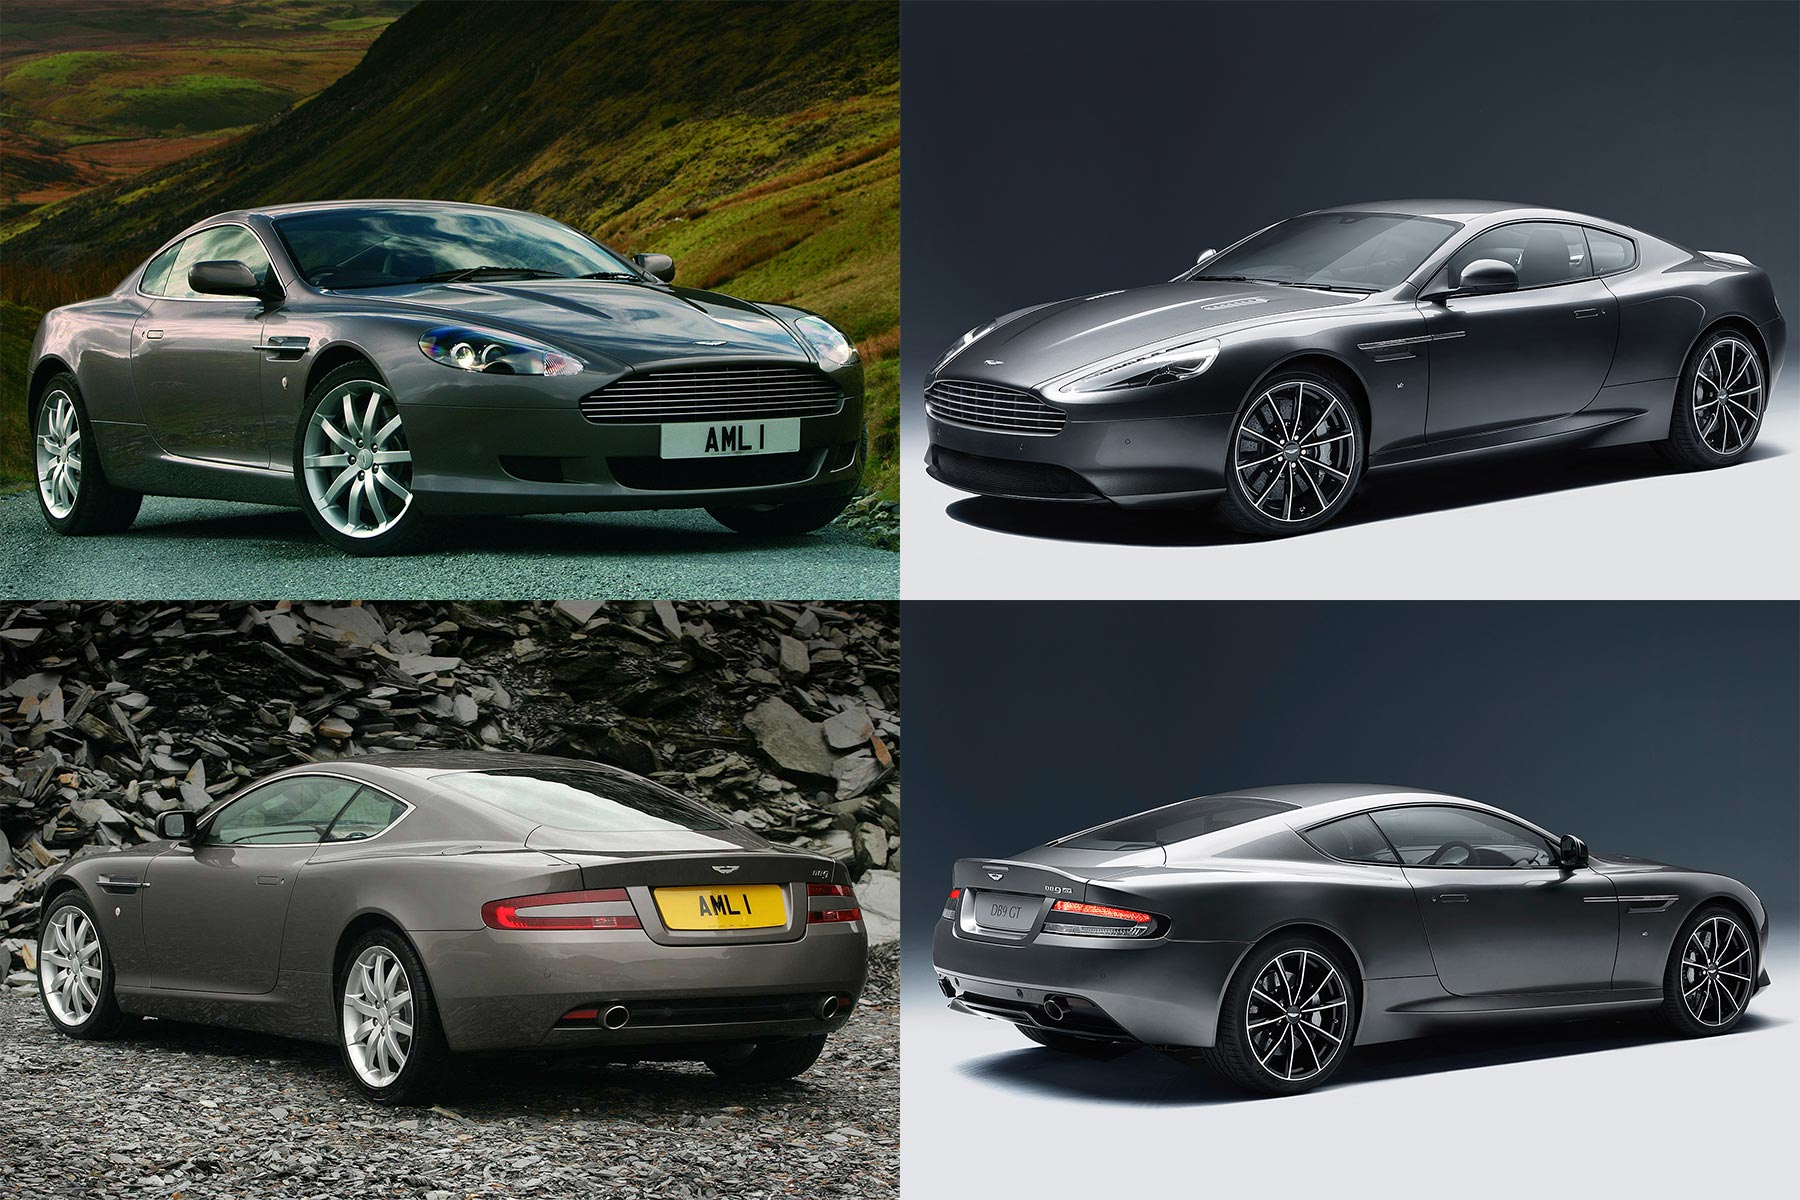 Aston Martin DB9 - then and now